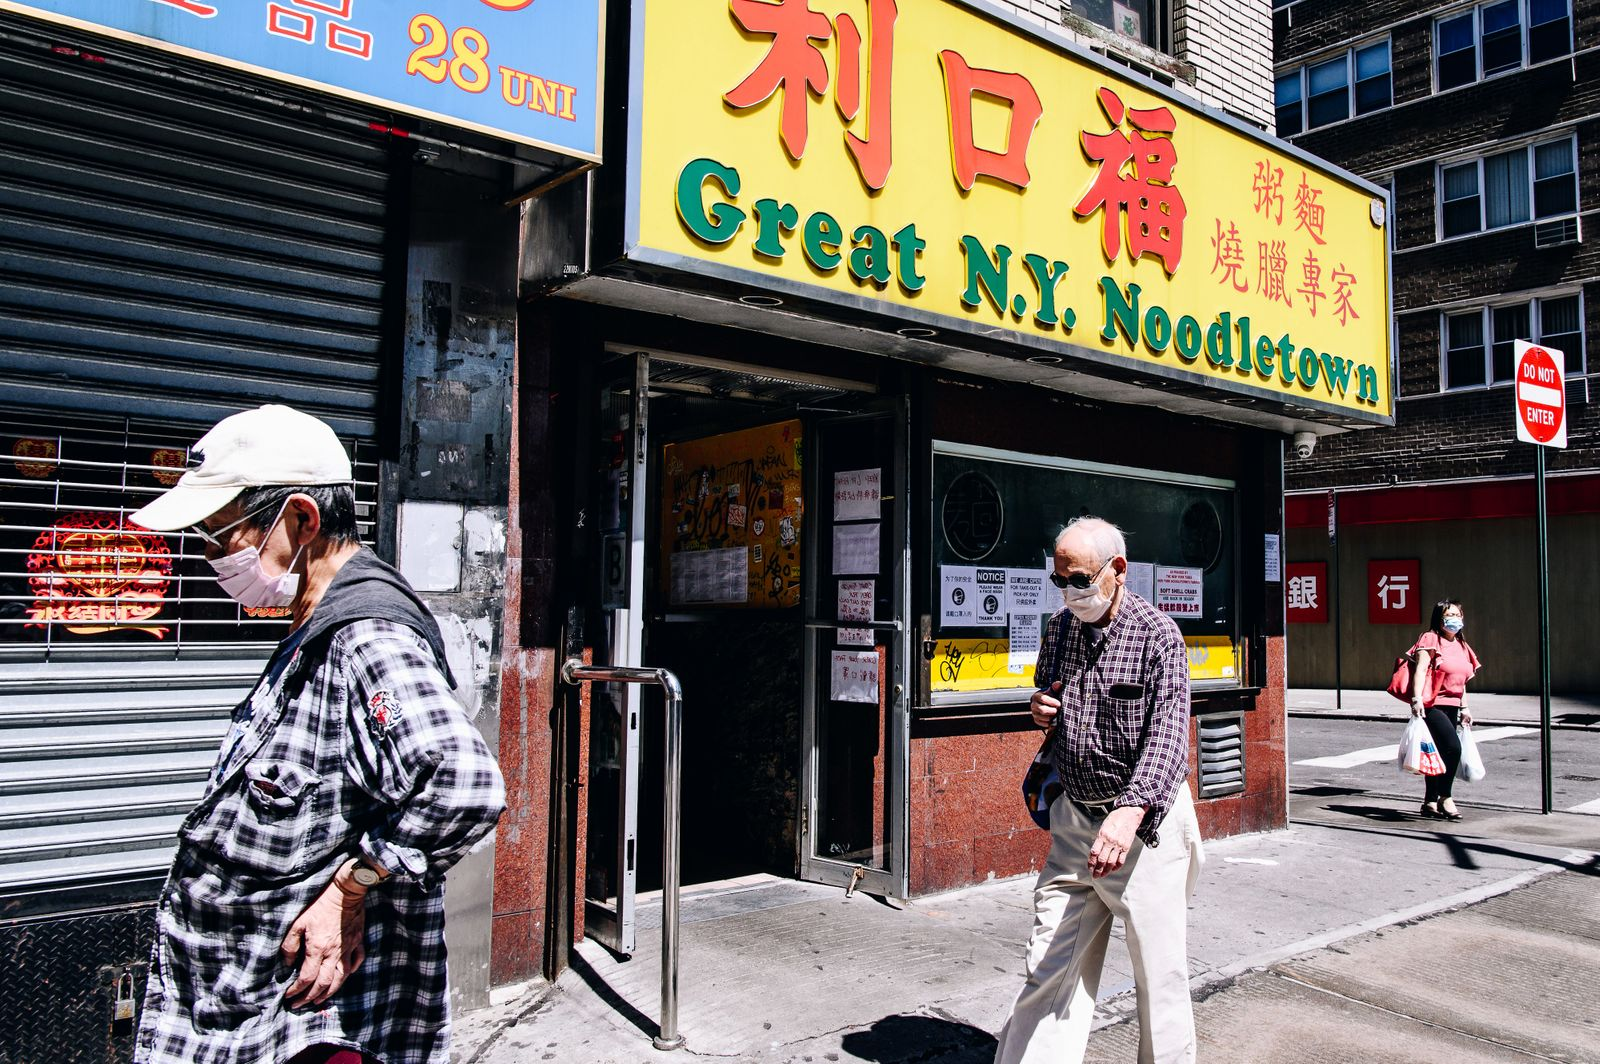 Chinatown Businesses Take Hit Amid Pandemic